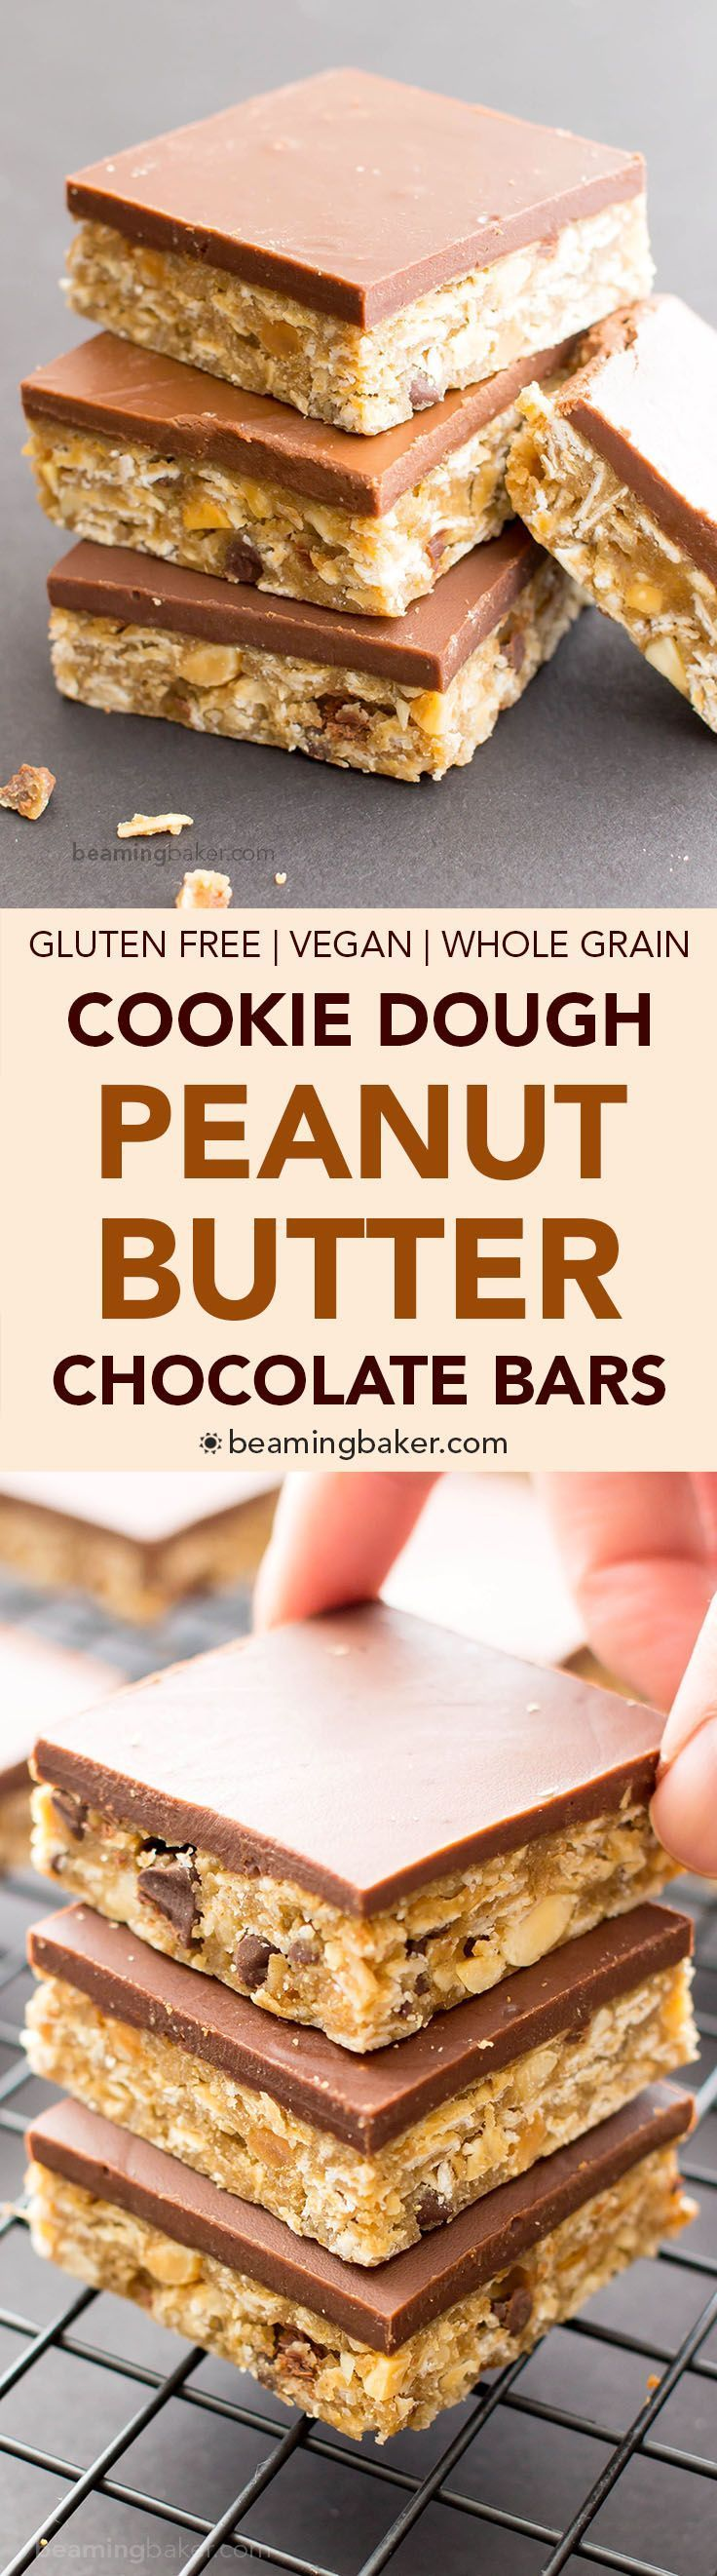 No Bake Chocolate Peanut Butter Oatmeal Cookie Dough Bars (V, GF, DF): an easy recipe for decadent peanut butter cookie dough bars topped with a thick layer of chocolate and bursting with oats.